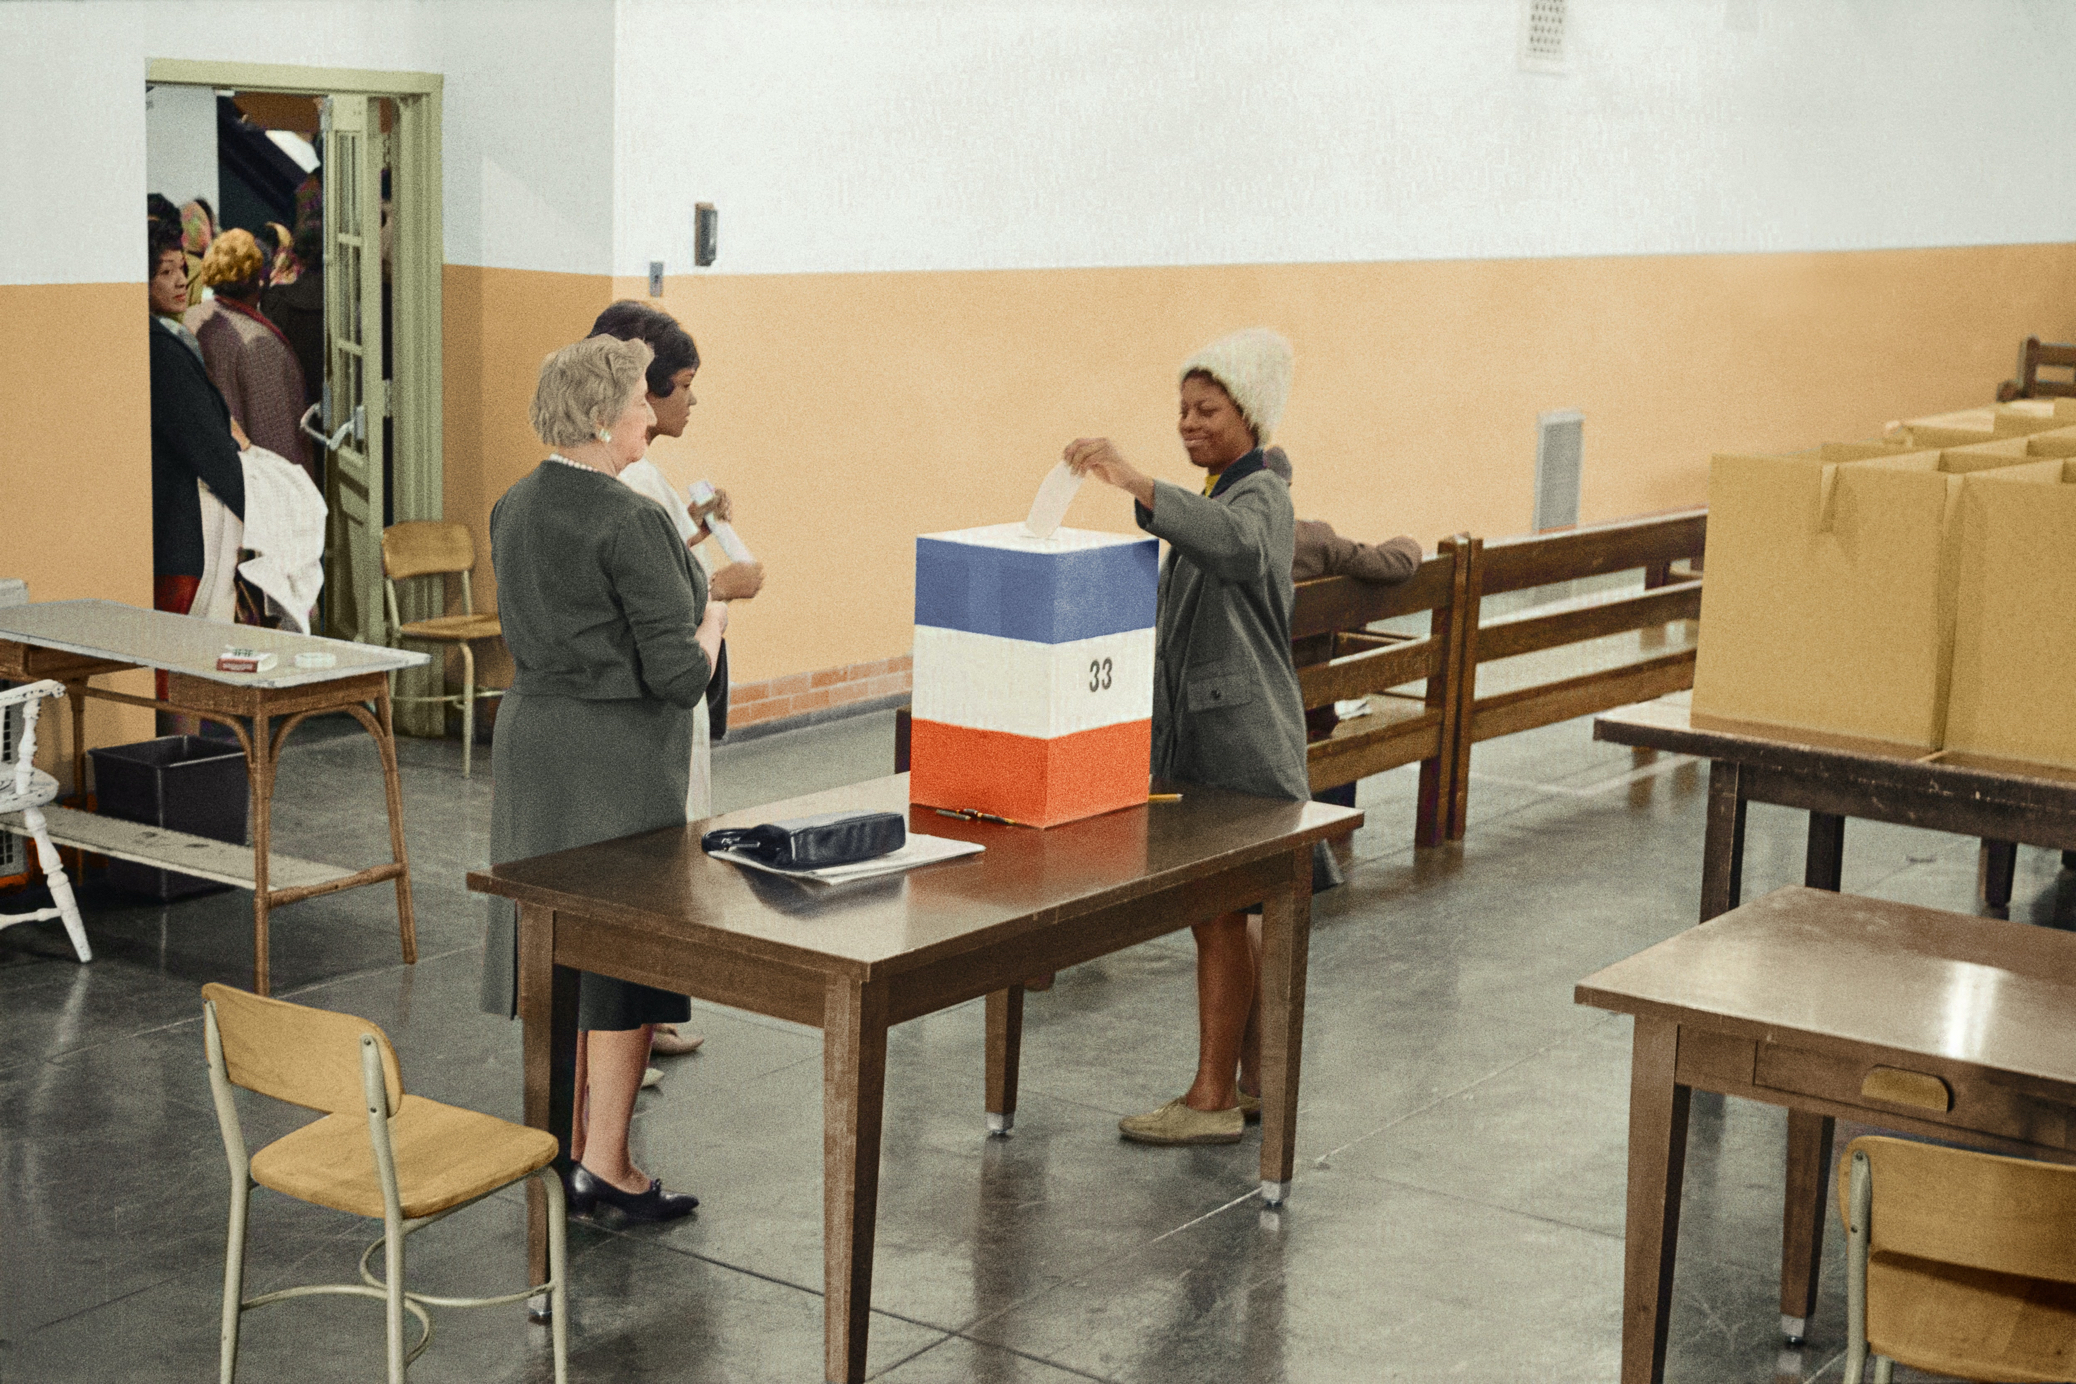 A Black woman in the 1960s places a ballot in a ballot box as two white women watch.